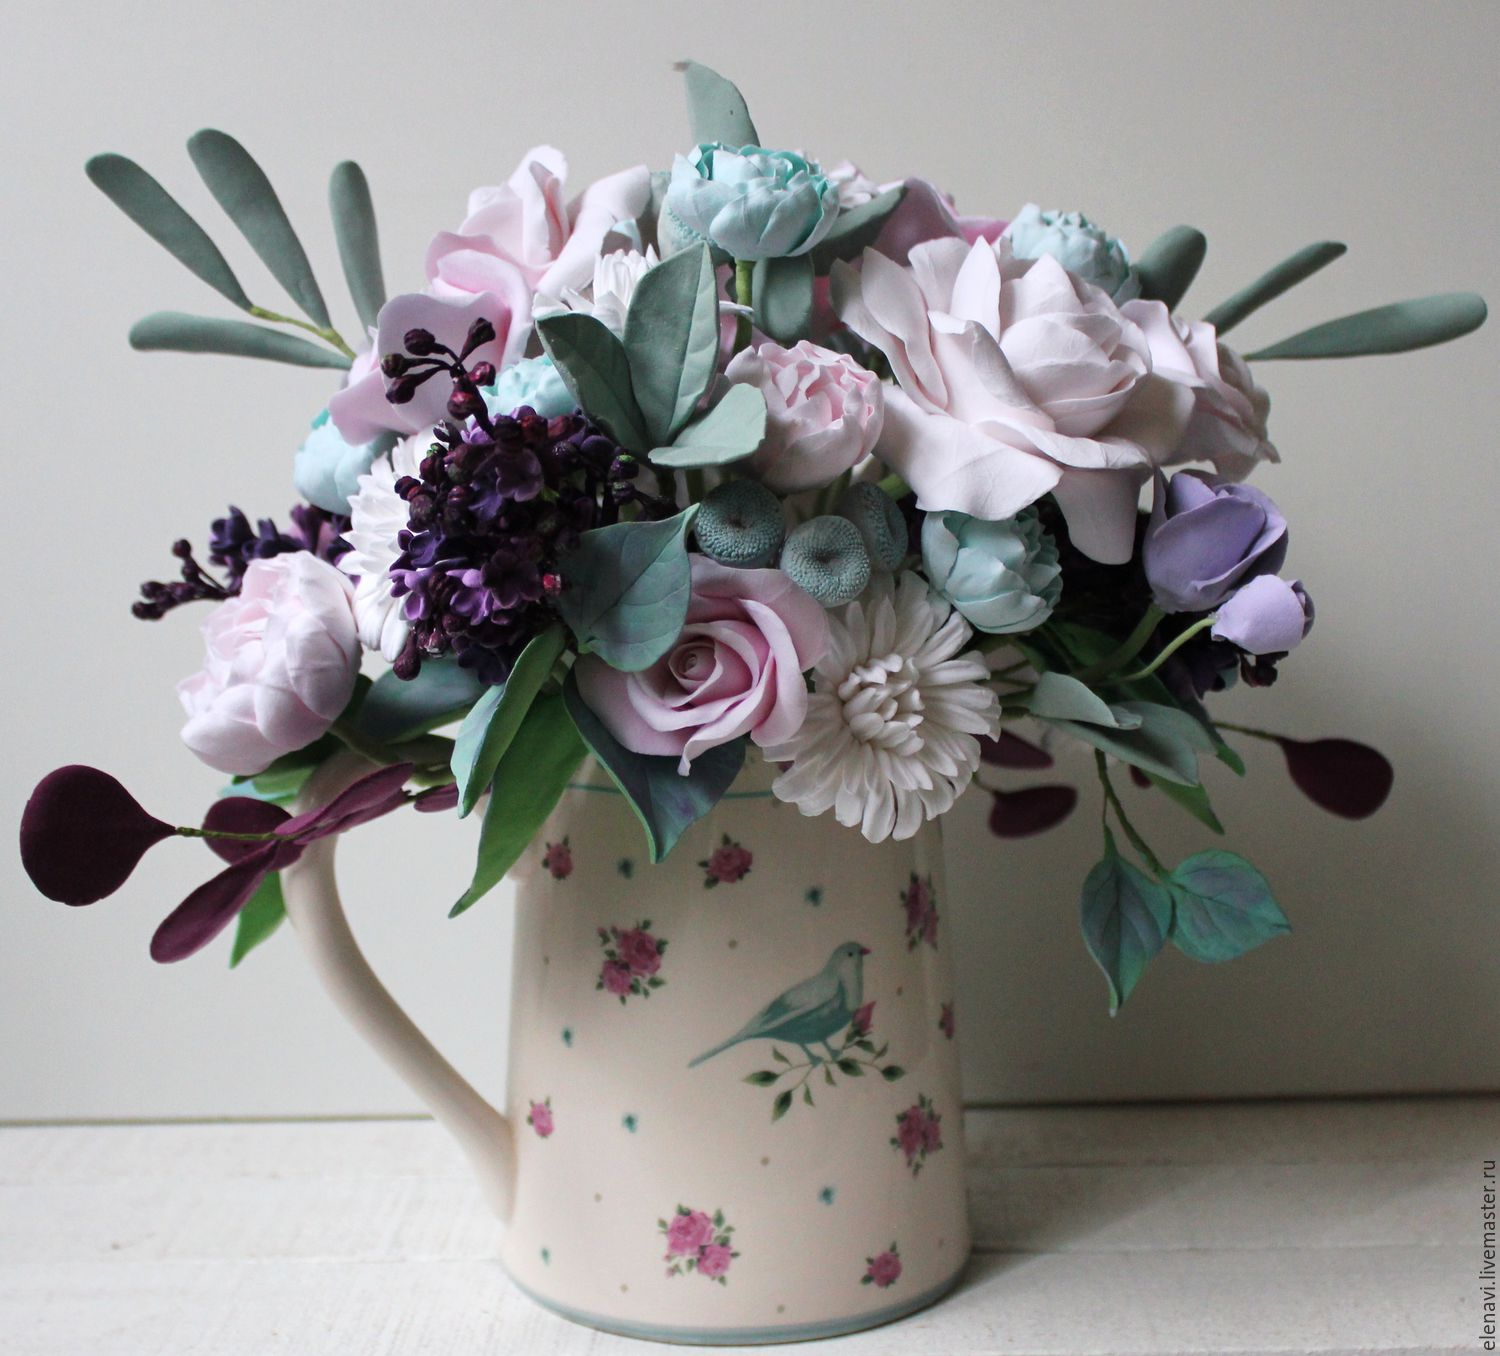 provence a romantic bouquet shop online on livemaster with